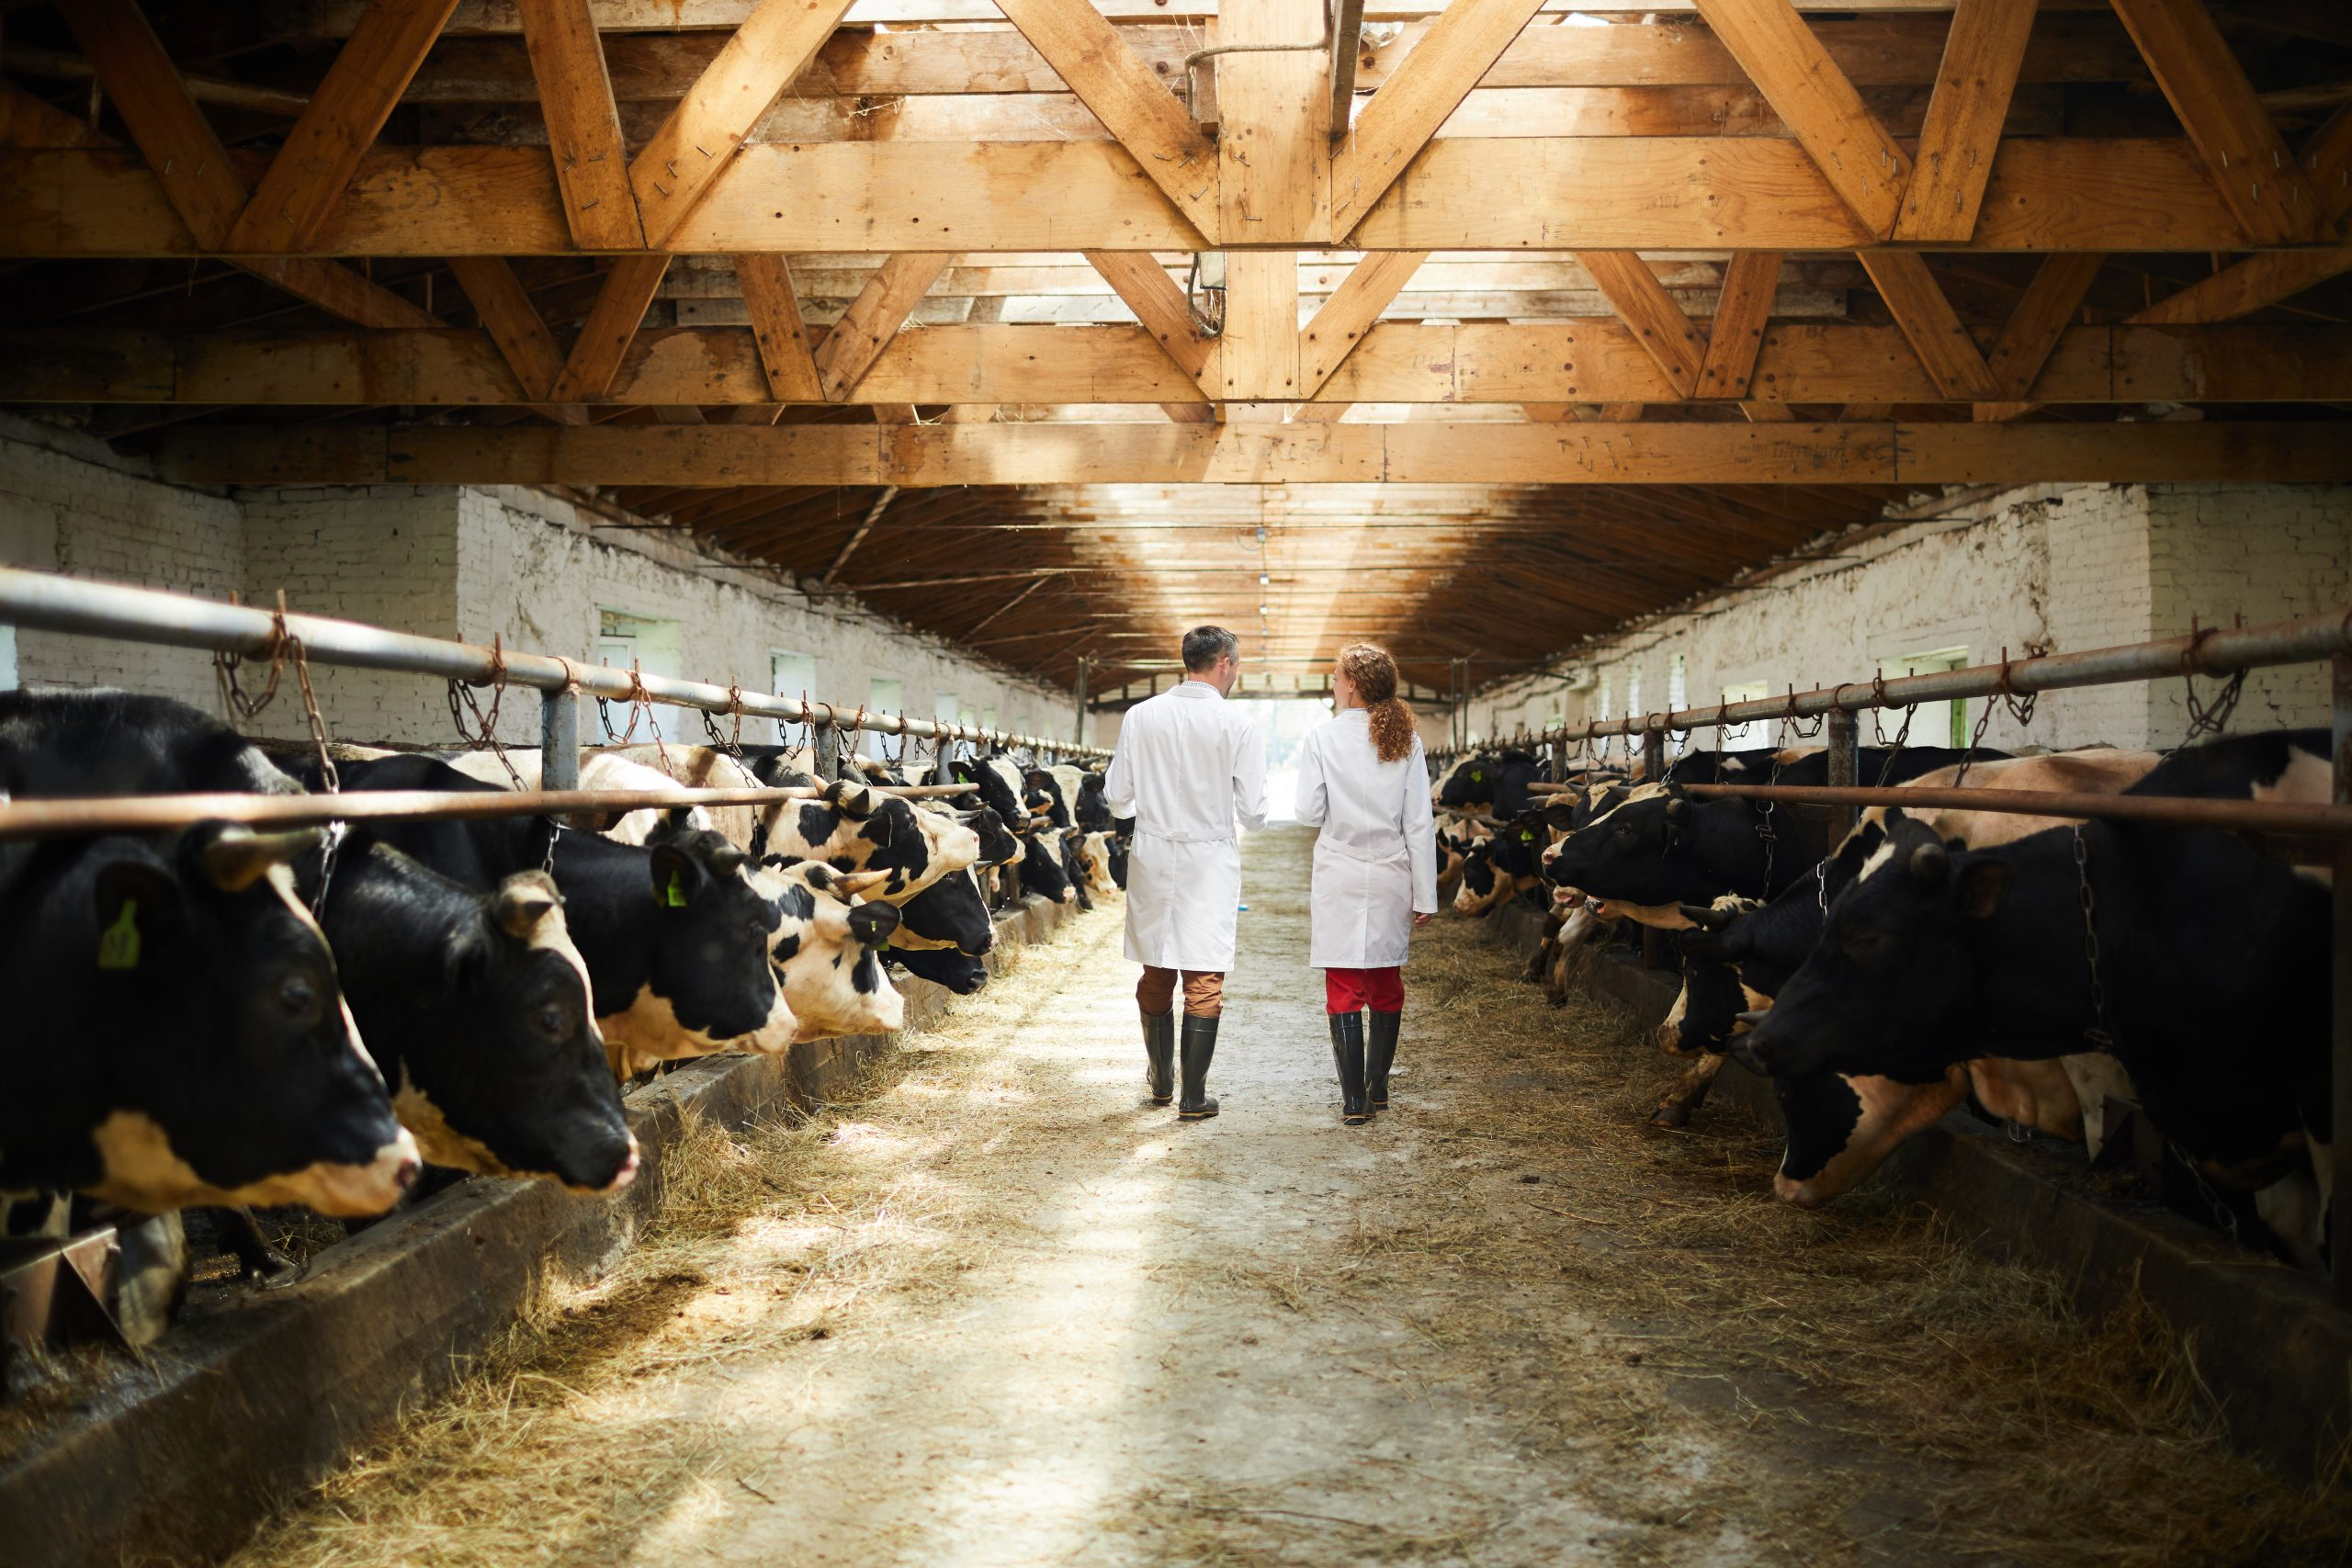 The meatpacking industry: Managing a COVID-19 ravaged workplace